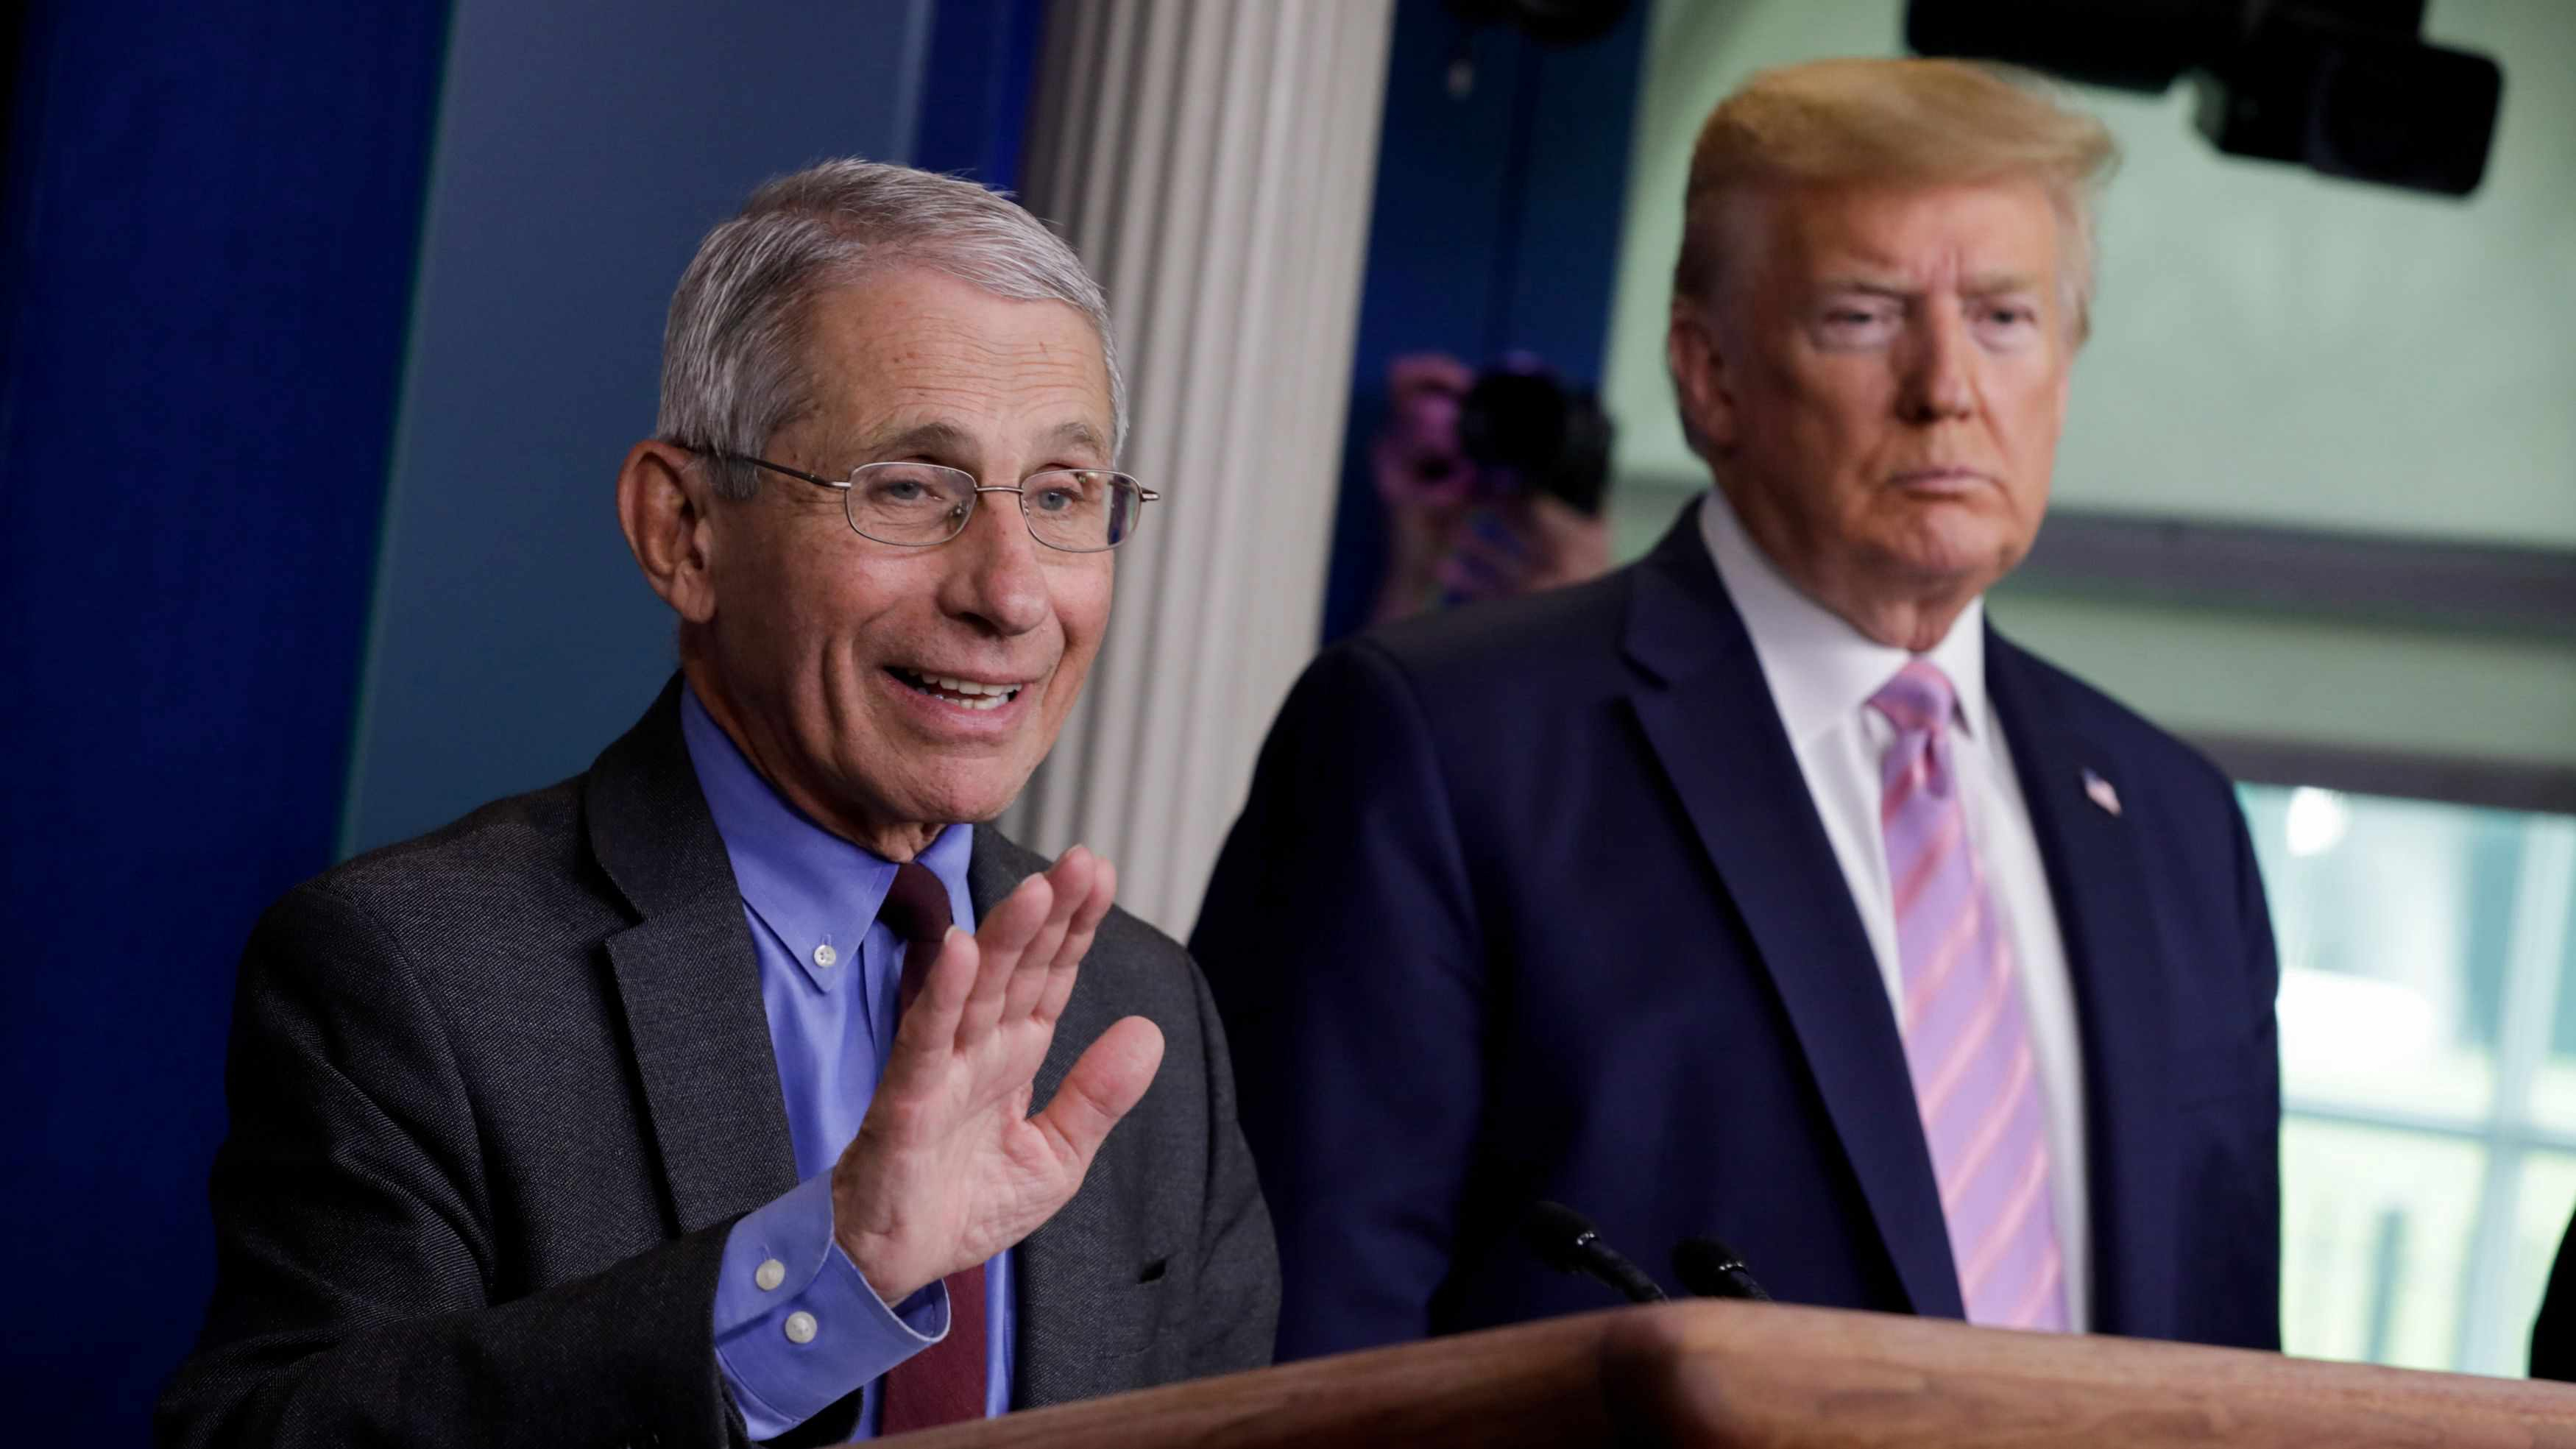 Is blocking Fauci an attempt to silence dissidents?